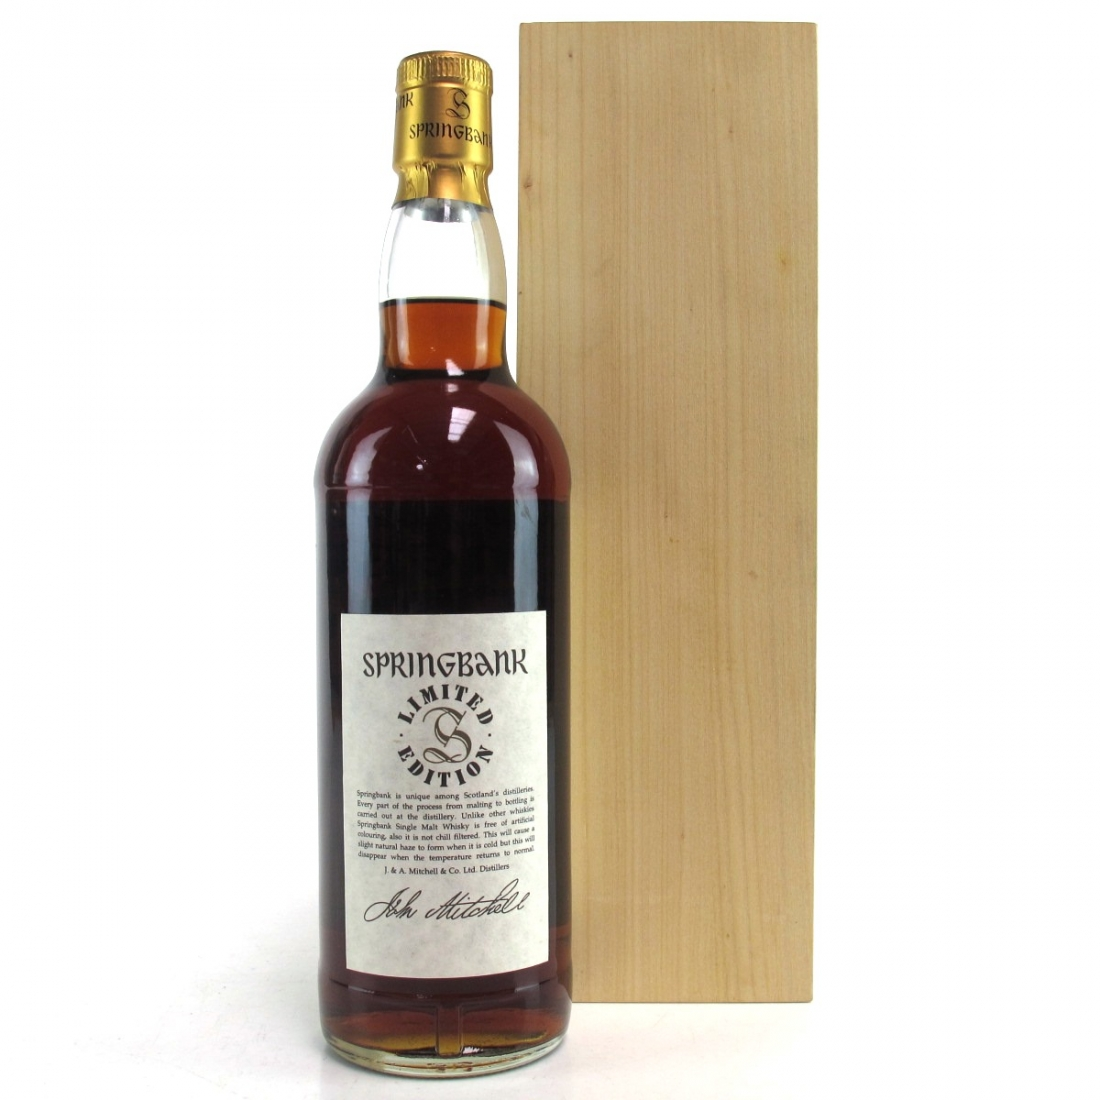 Springbank 30 Year Old Millennium Limited Edition